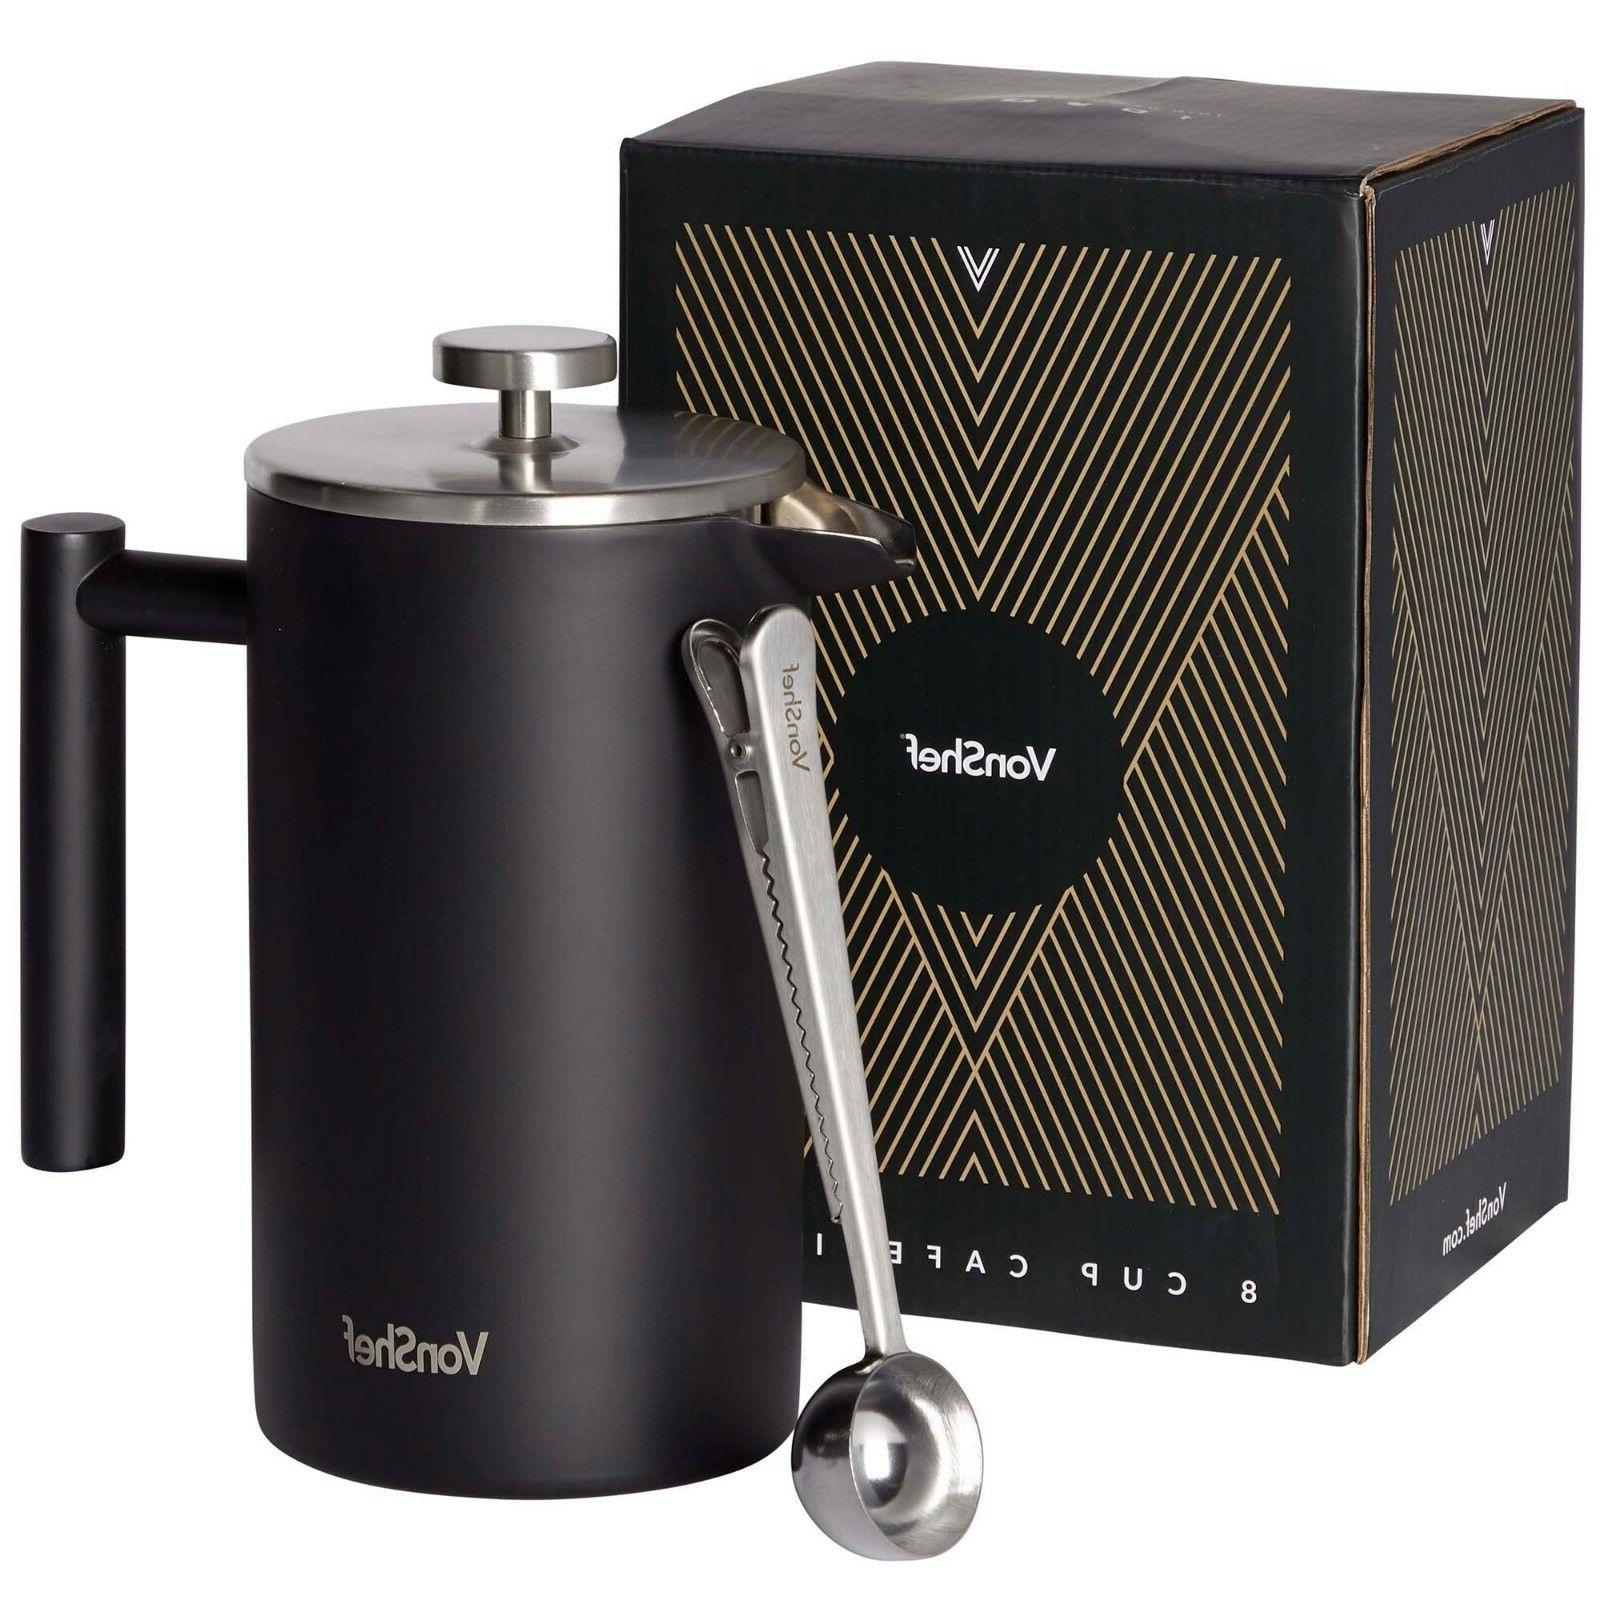 34oz 12 cup stainless steel french press